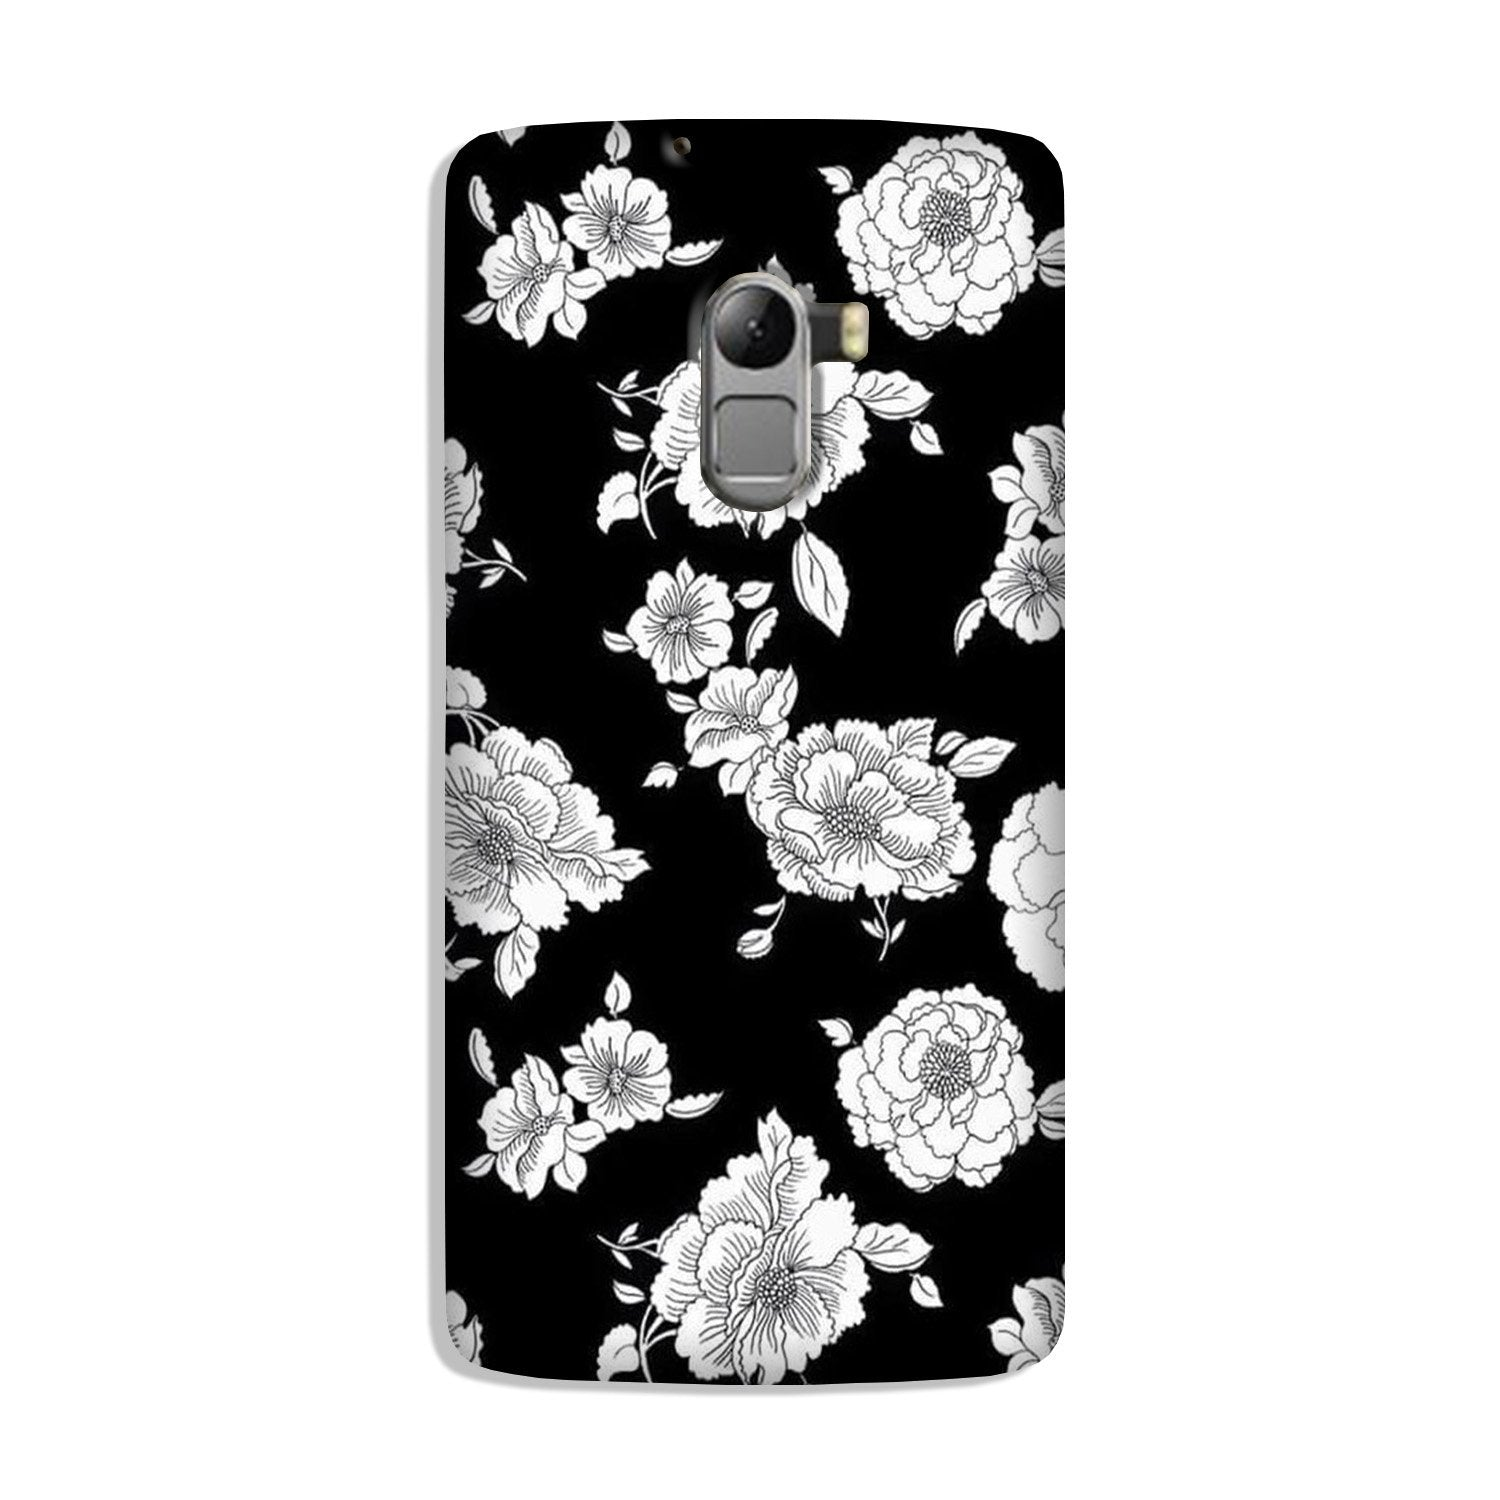 White flowers Black Background Case for Lenovo K4 Note